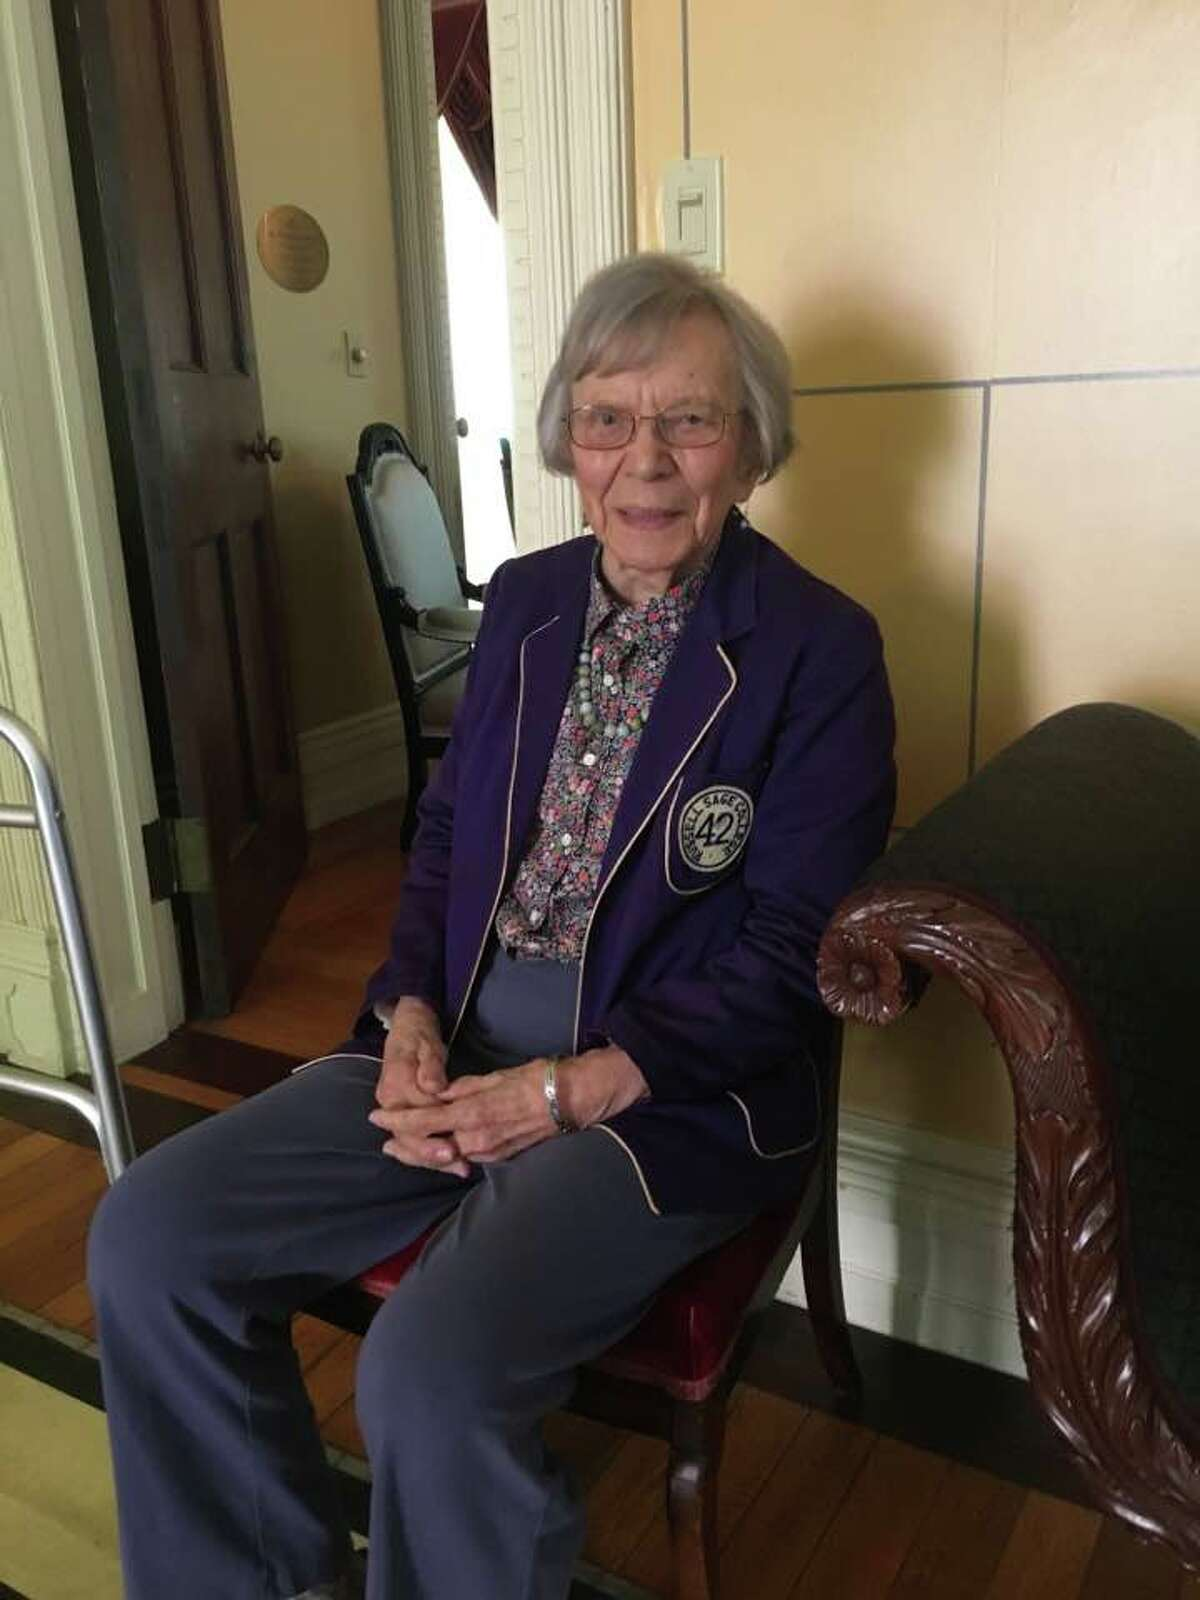 Eugenia Rutherford attending her 75th reunion at Russell Sage College in 2017. (Contributed photo.)